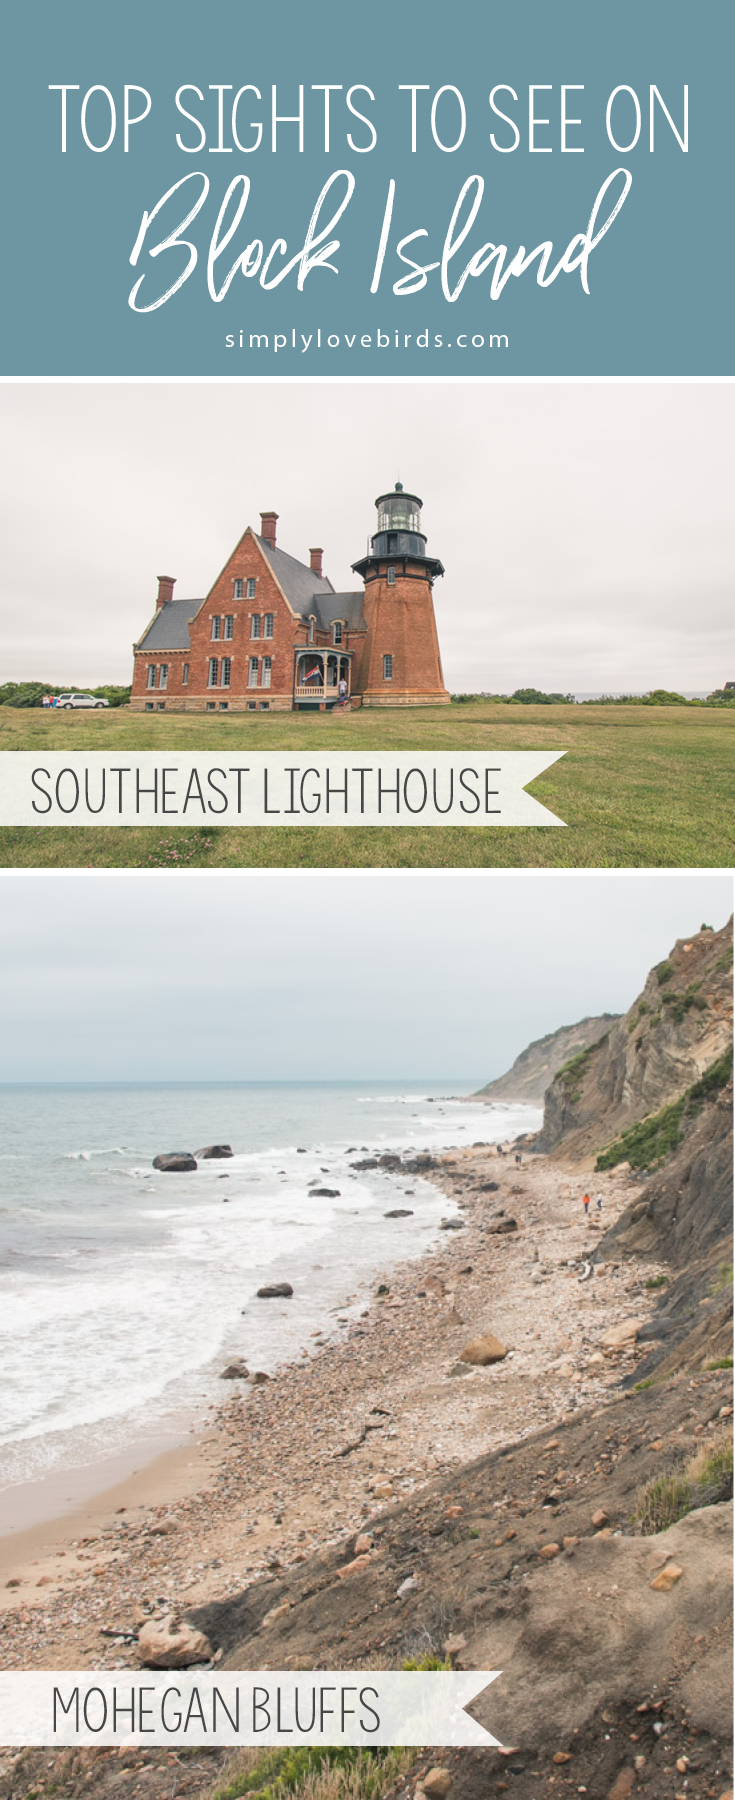 Top Sights to See on Block Island / Simply Lovebirds